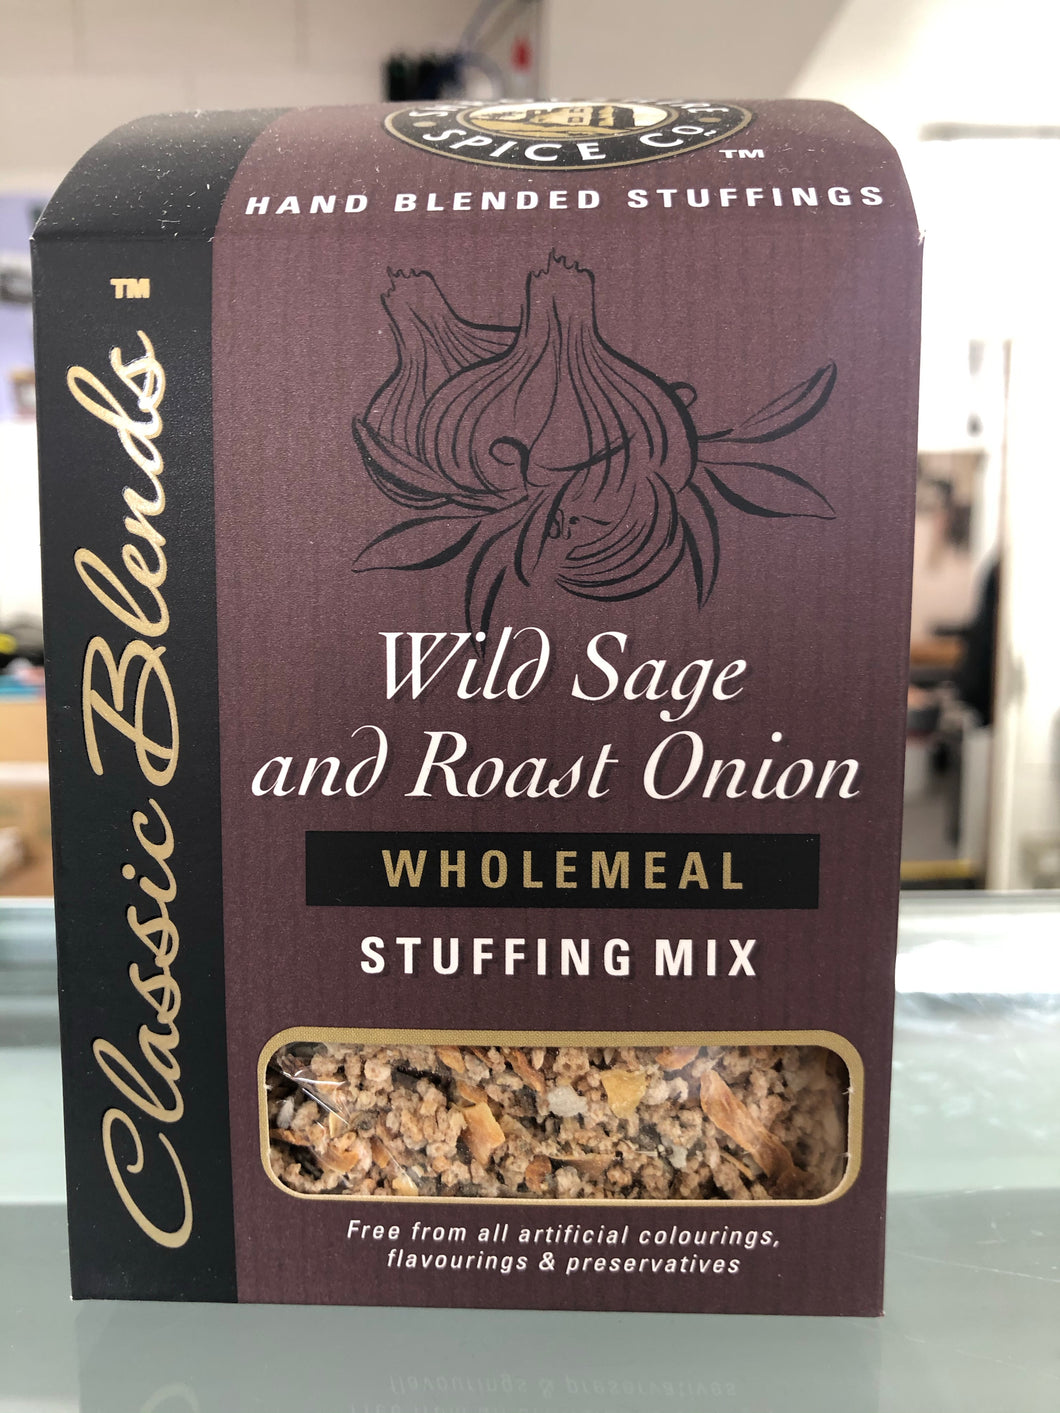 Wild Sage & Roast Onion Stuffing